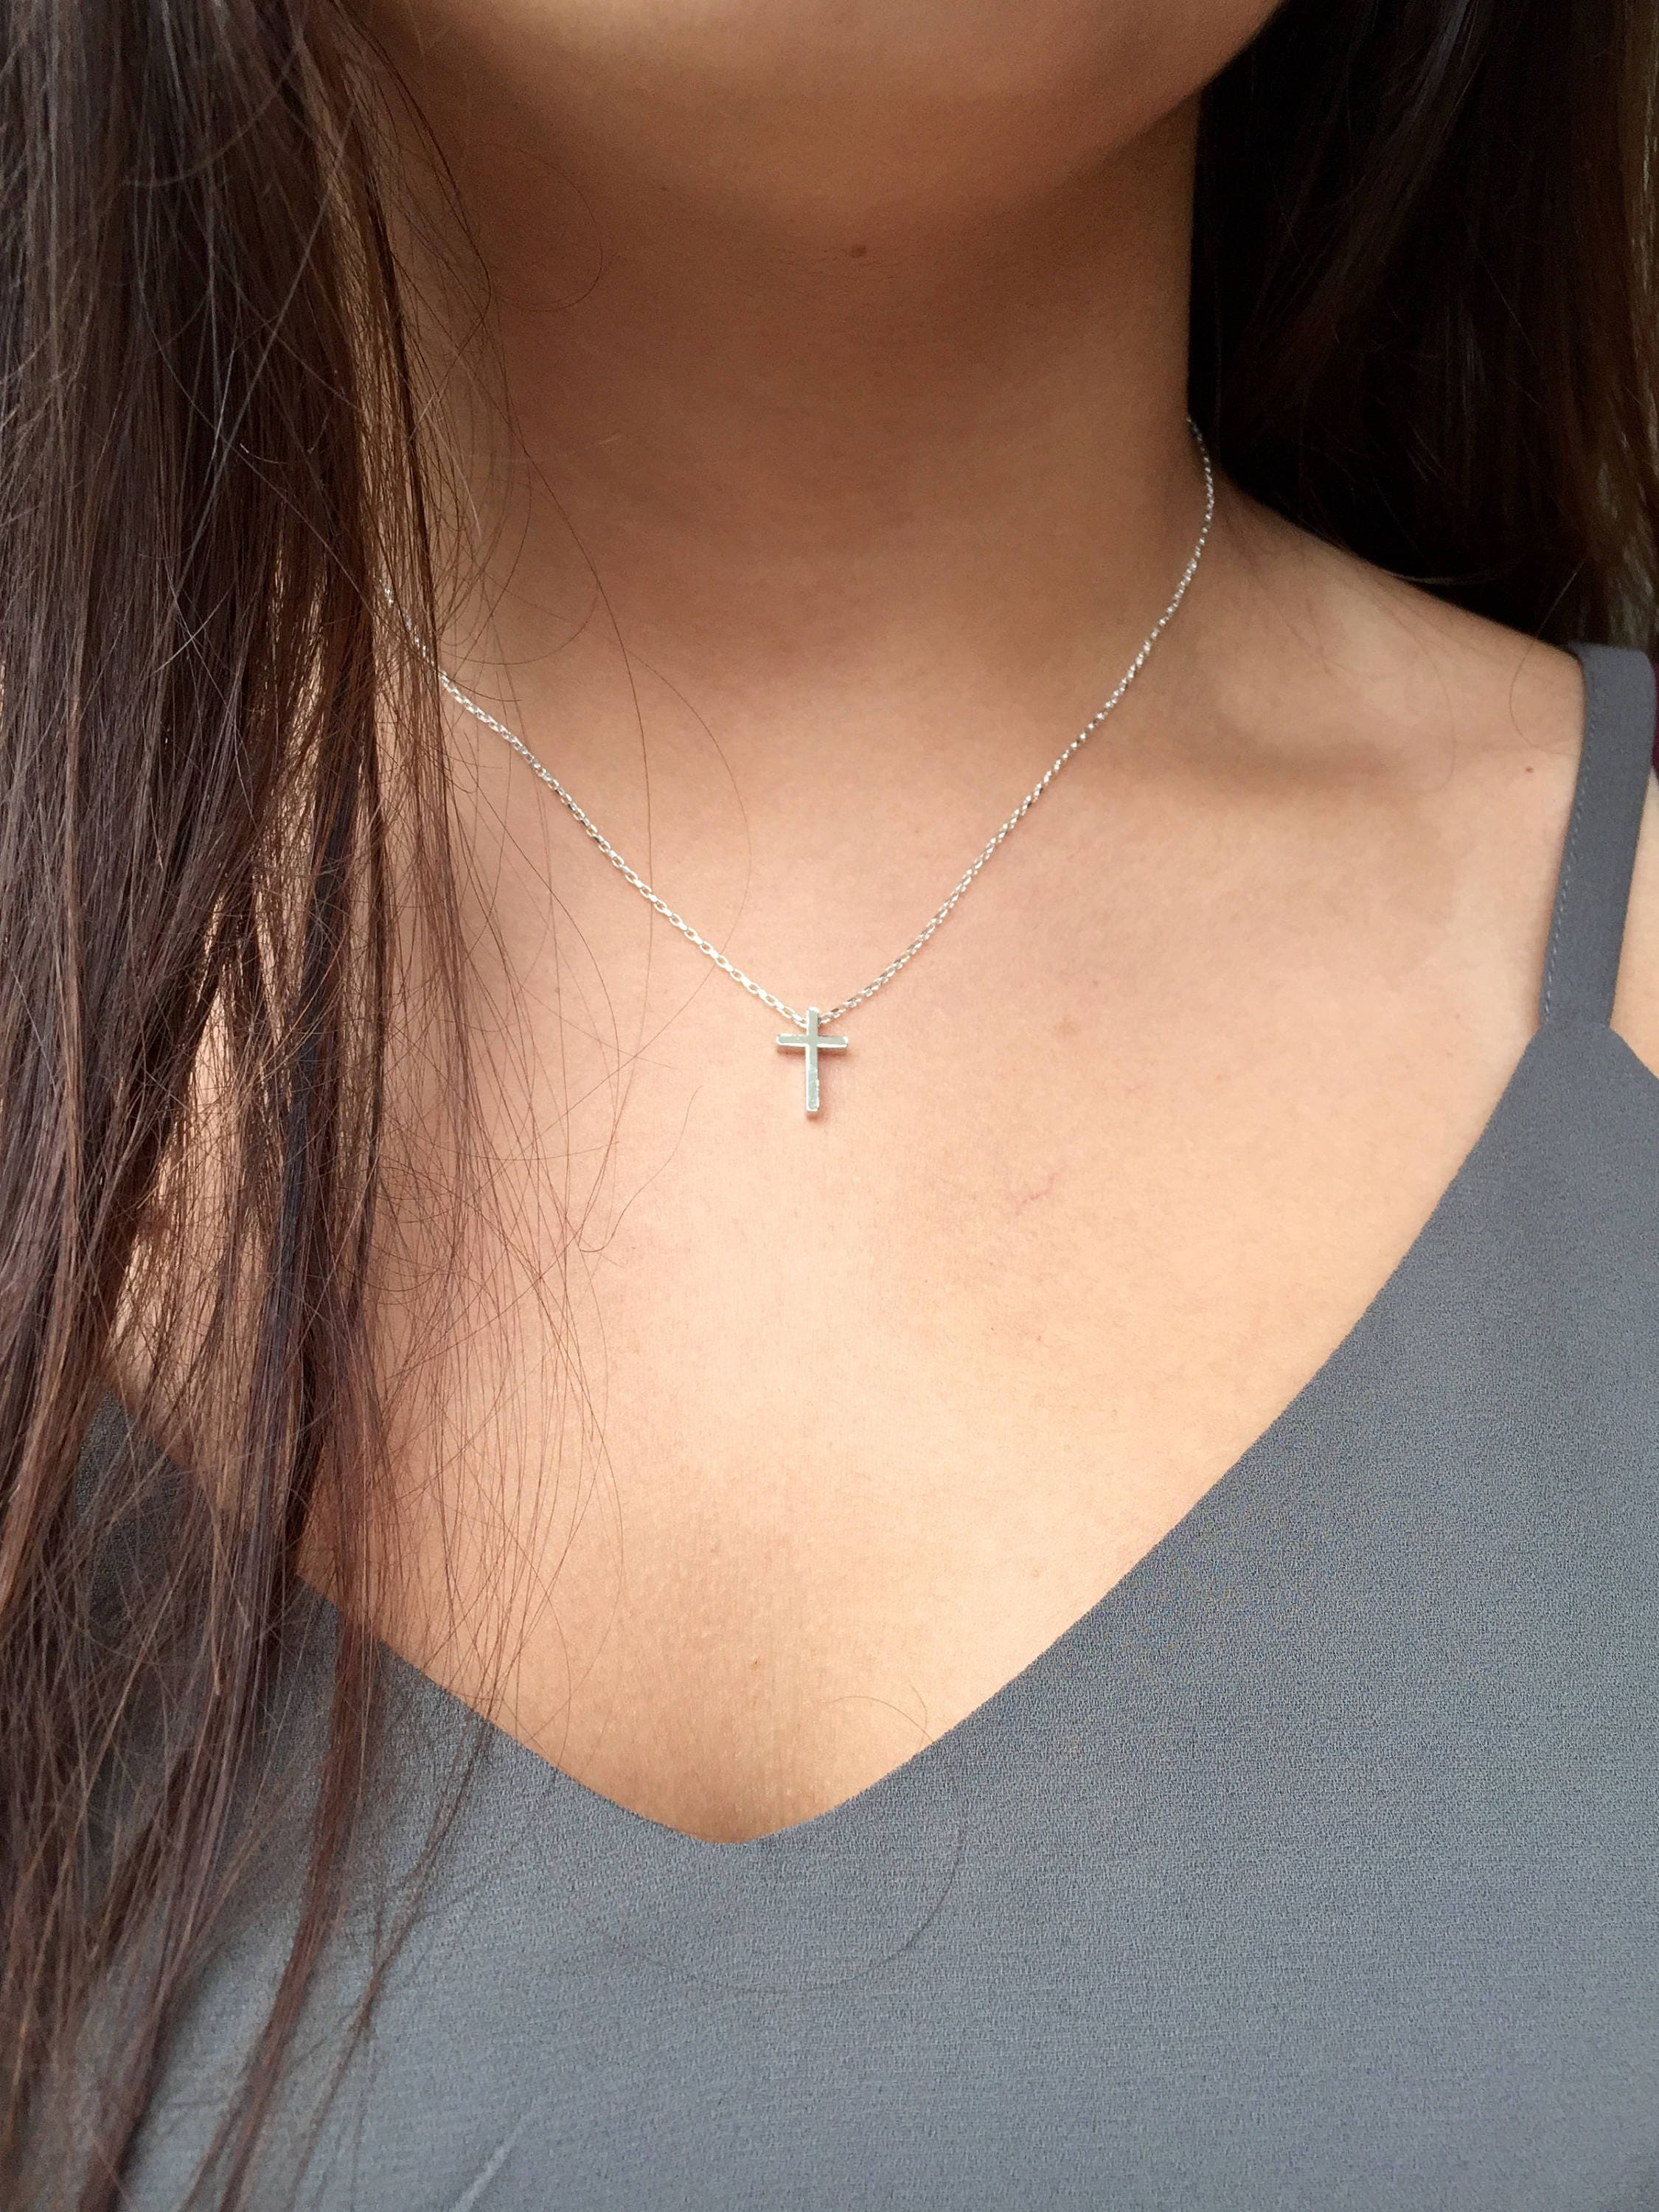 dp silver necklace amazon cross com handmade tiny pendant sterling inch dainty choker small